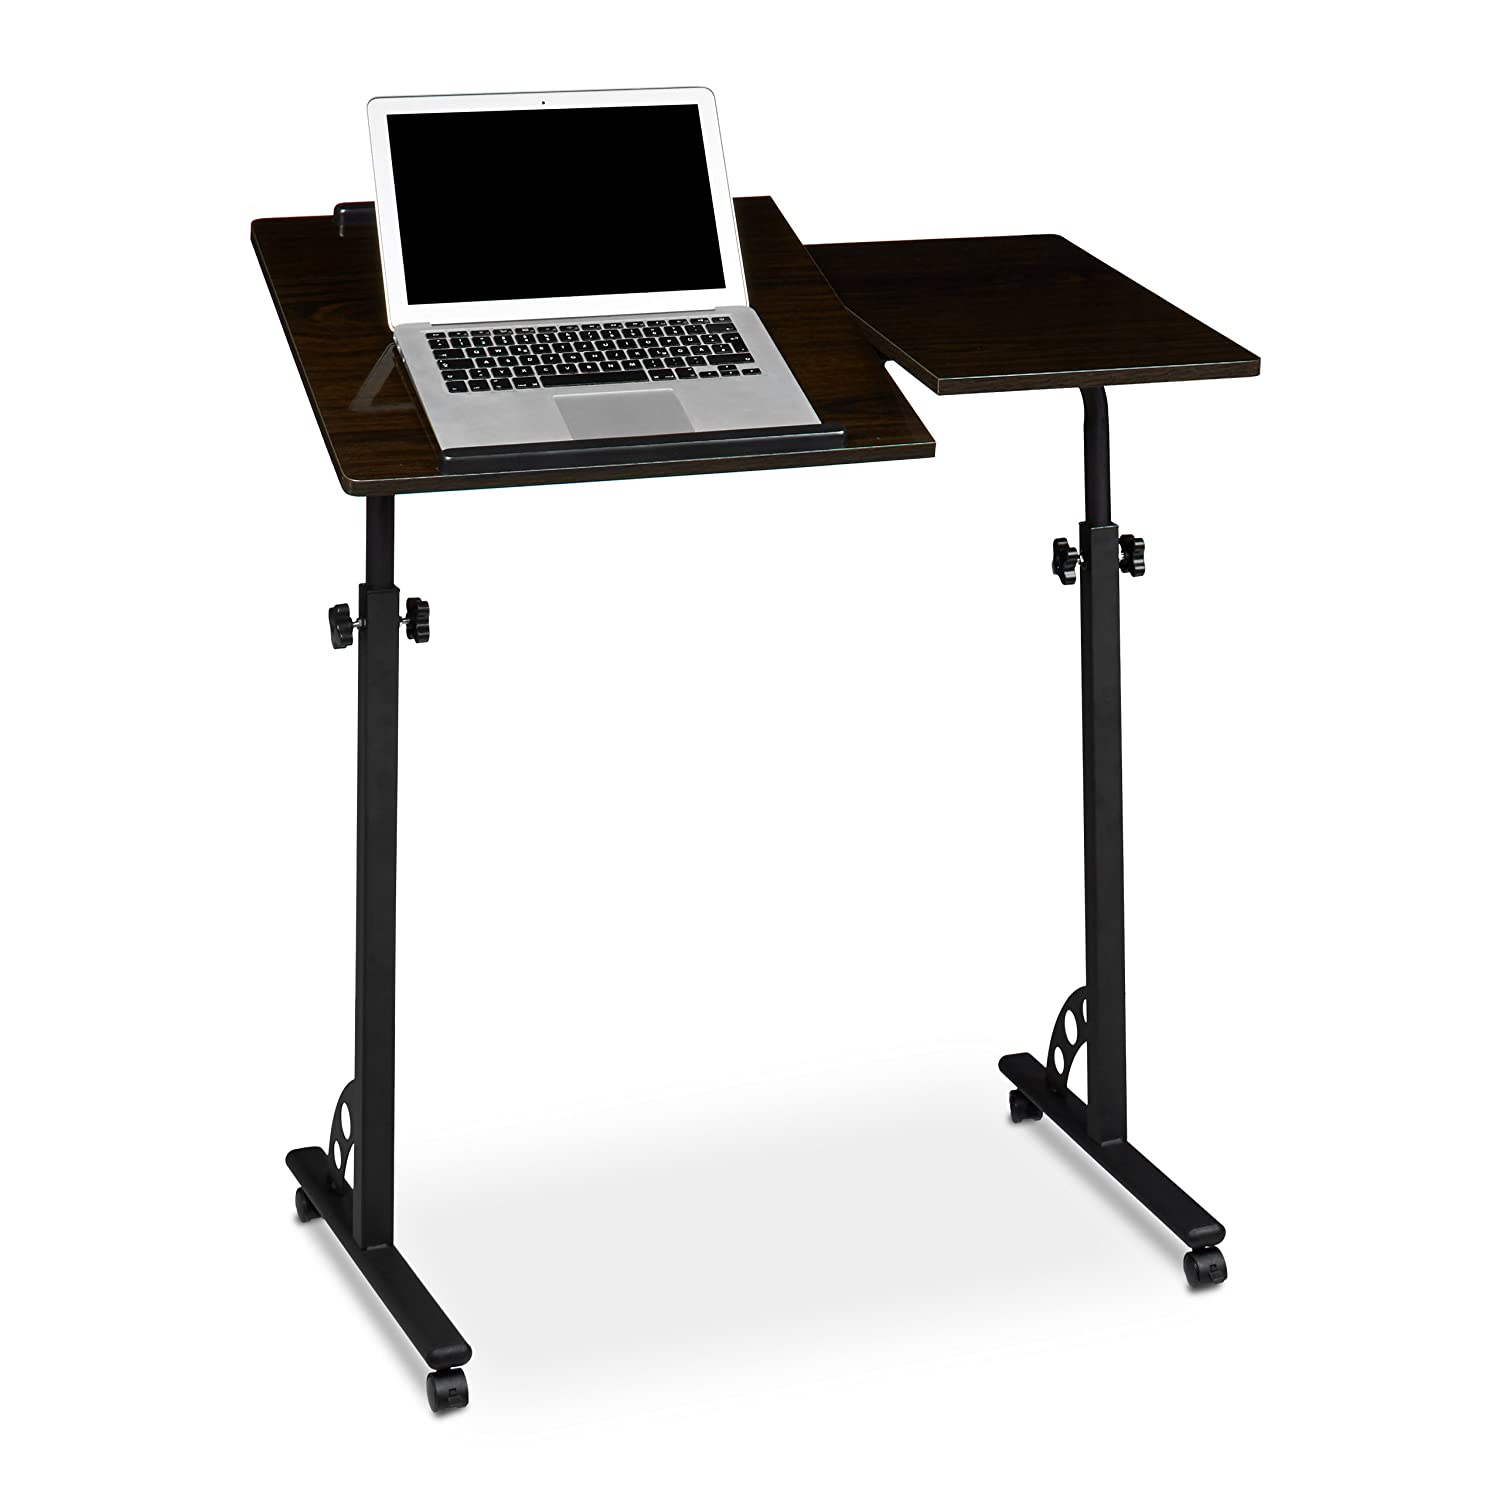 Relaxdays Laptop Table, Large, Height Adjustable, 110 x 80 x 50 cm, Mobile Podium w/ Wheels, Lecturn, Black 10020541_46